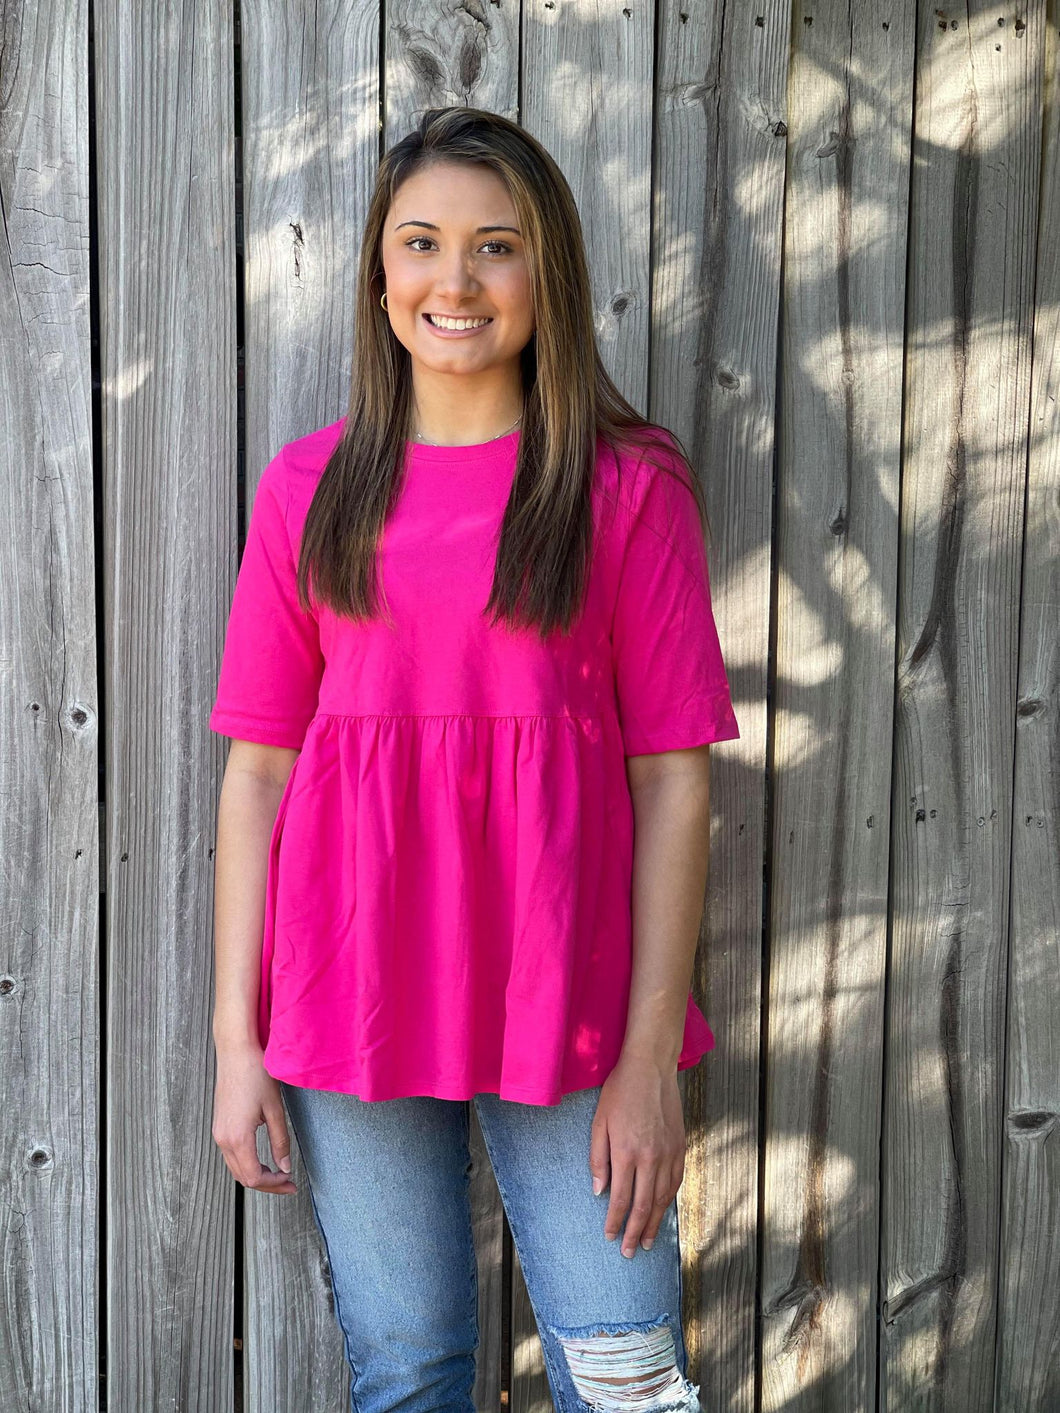 Sunny days are meant for out Brighter Days Ahead top. She is a beautiful half sleeve top with an empire waist and shirring top. You are sure going to feel fun, fabulous, and cute in this adorable top!